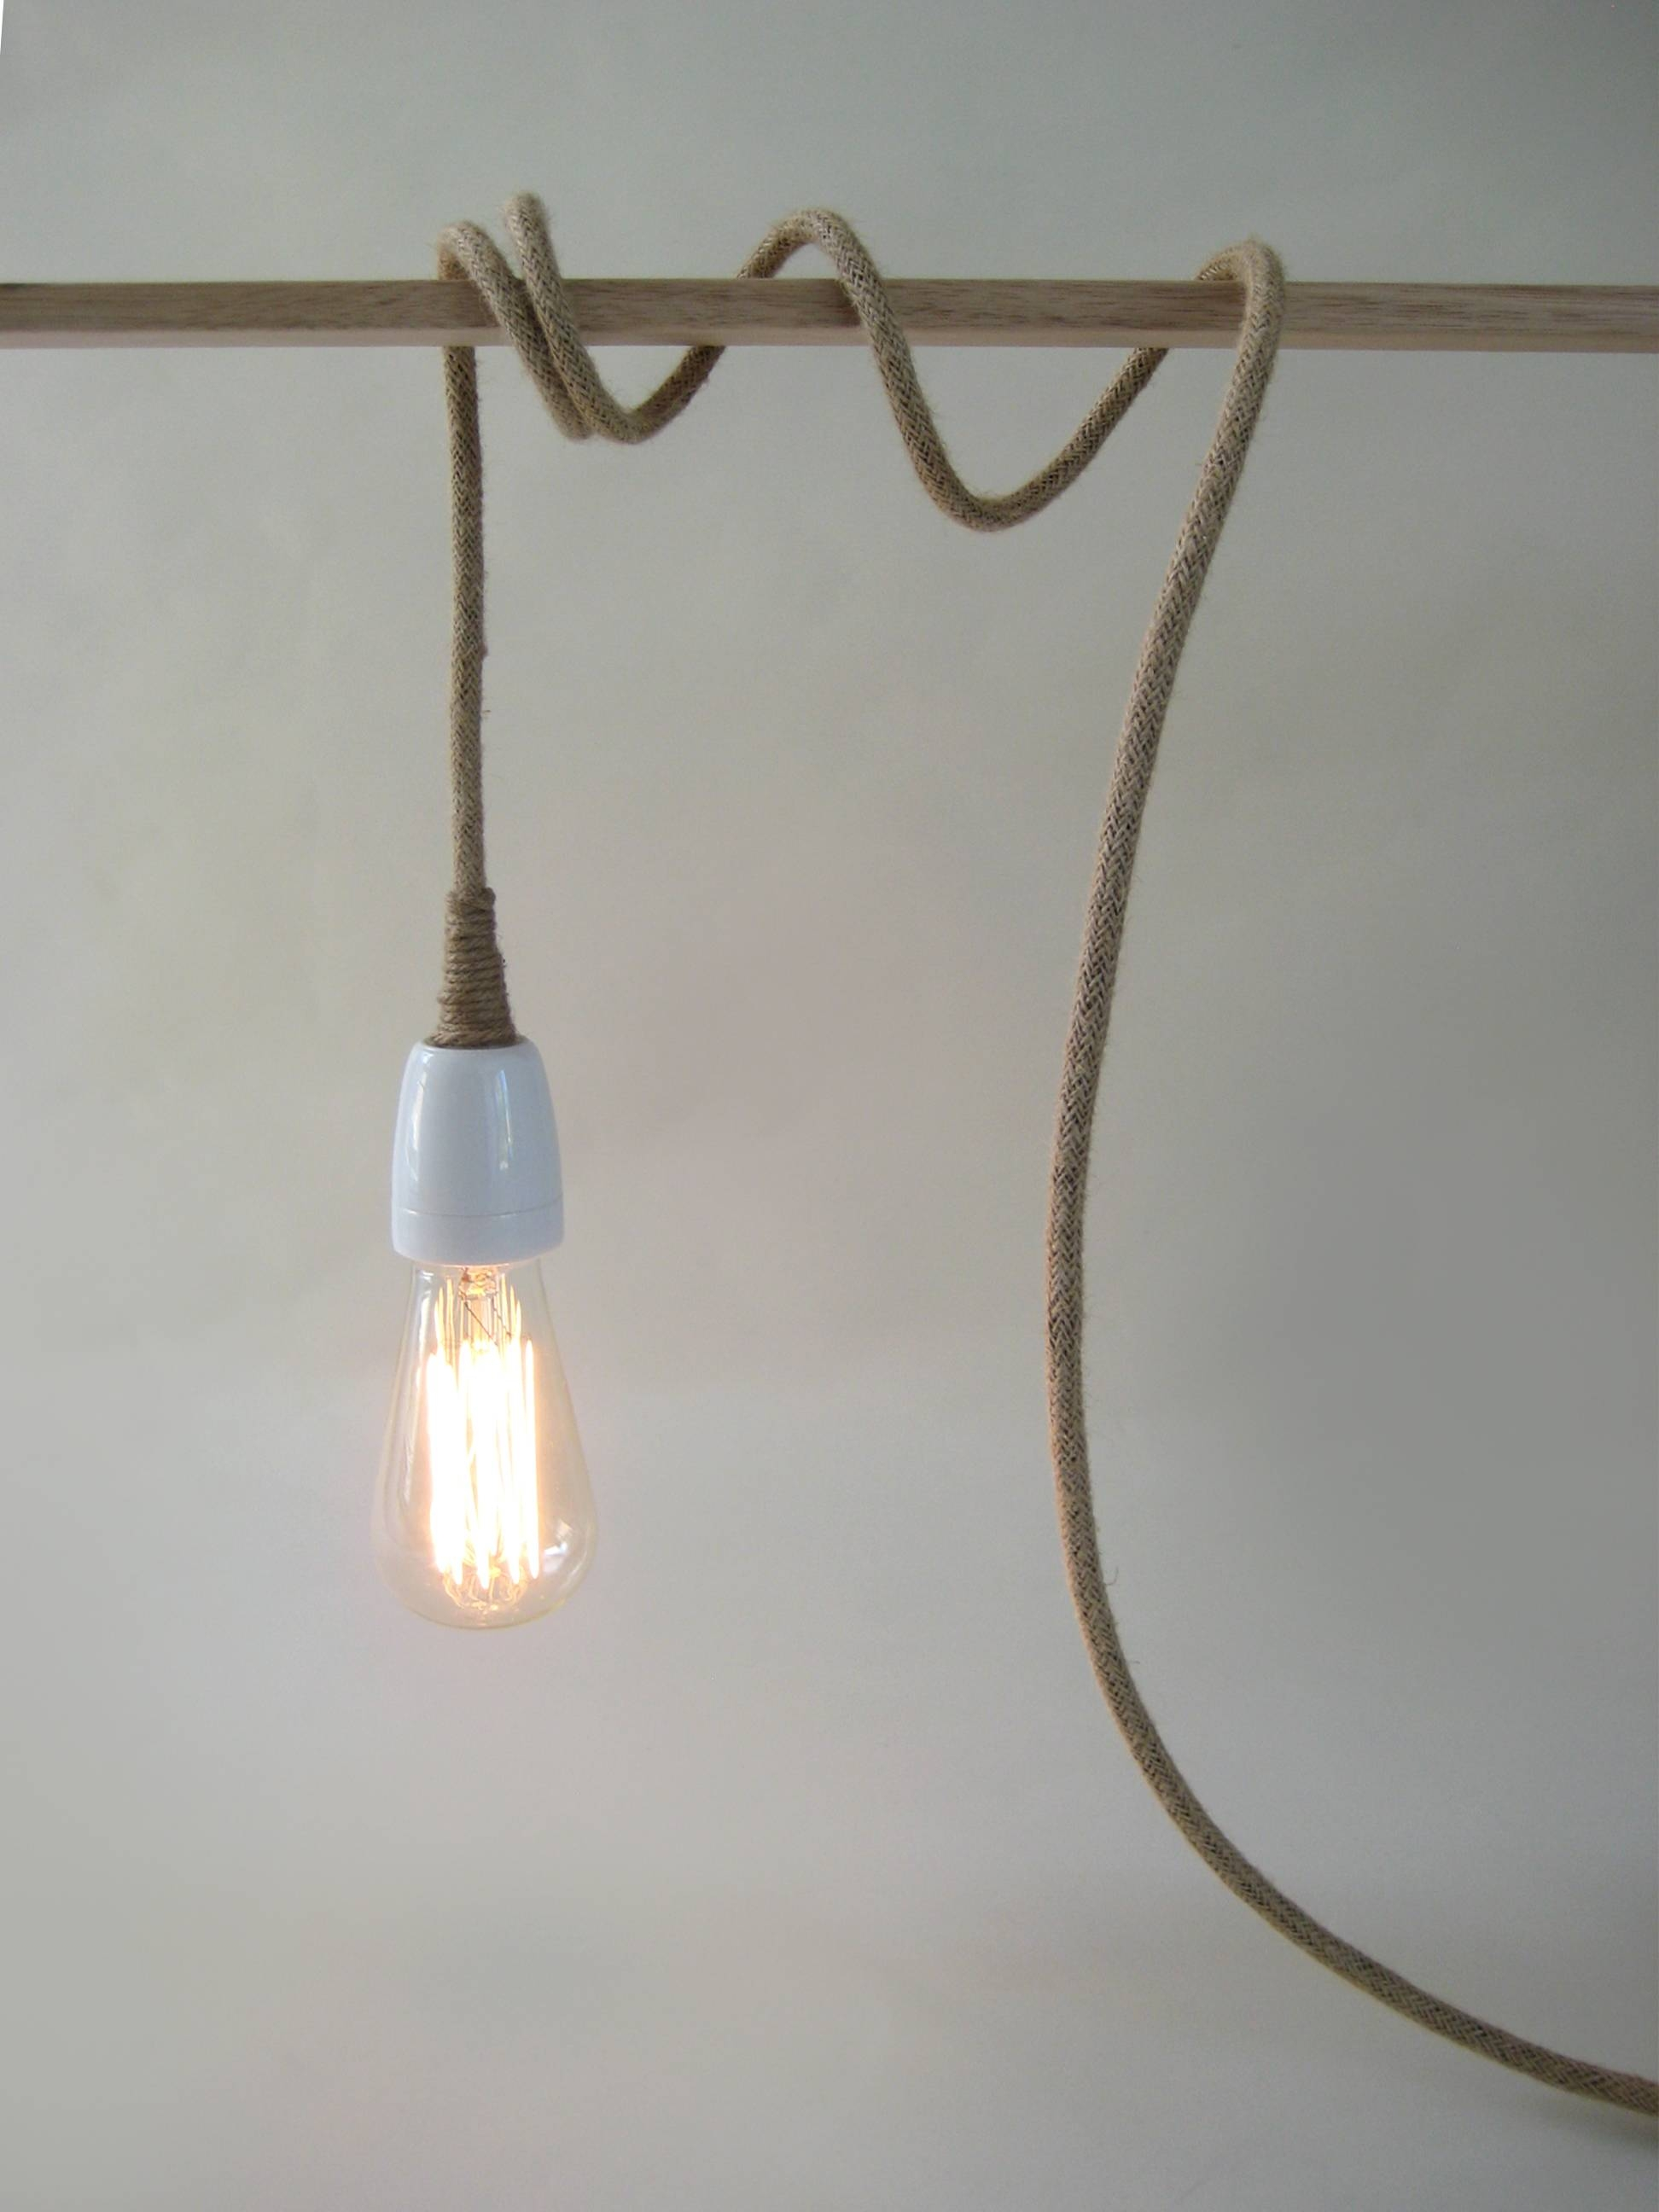 Pendant Light Plug In - Baby-Exit pertaining to Plugin Pendant Lights (Image 9 of 15)